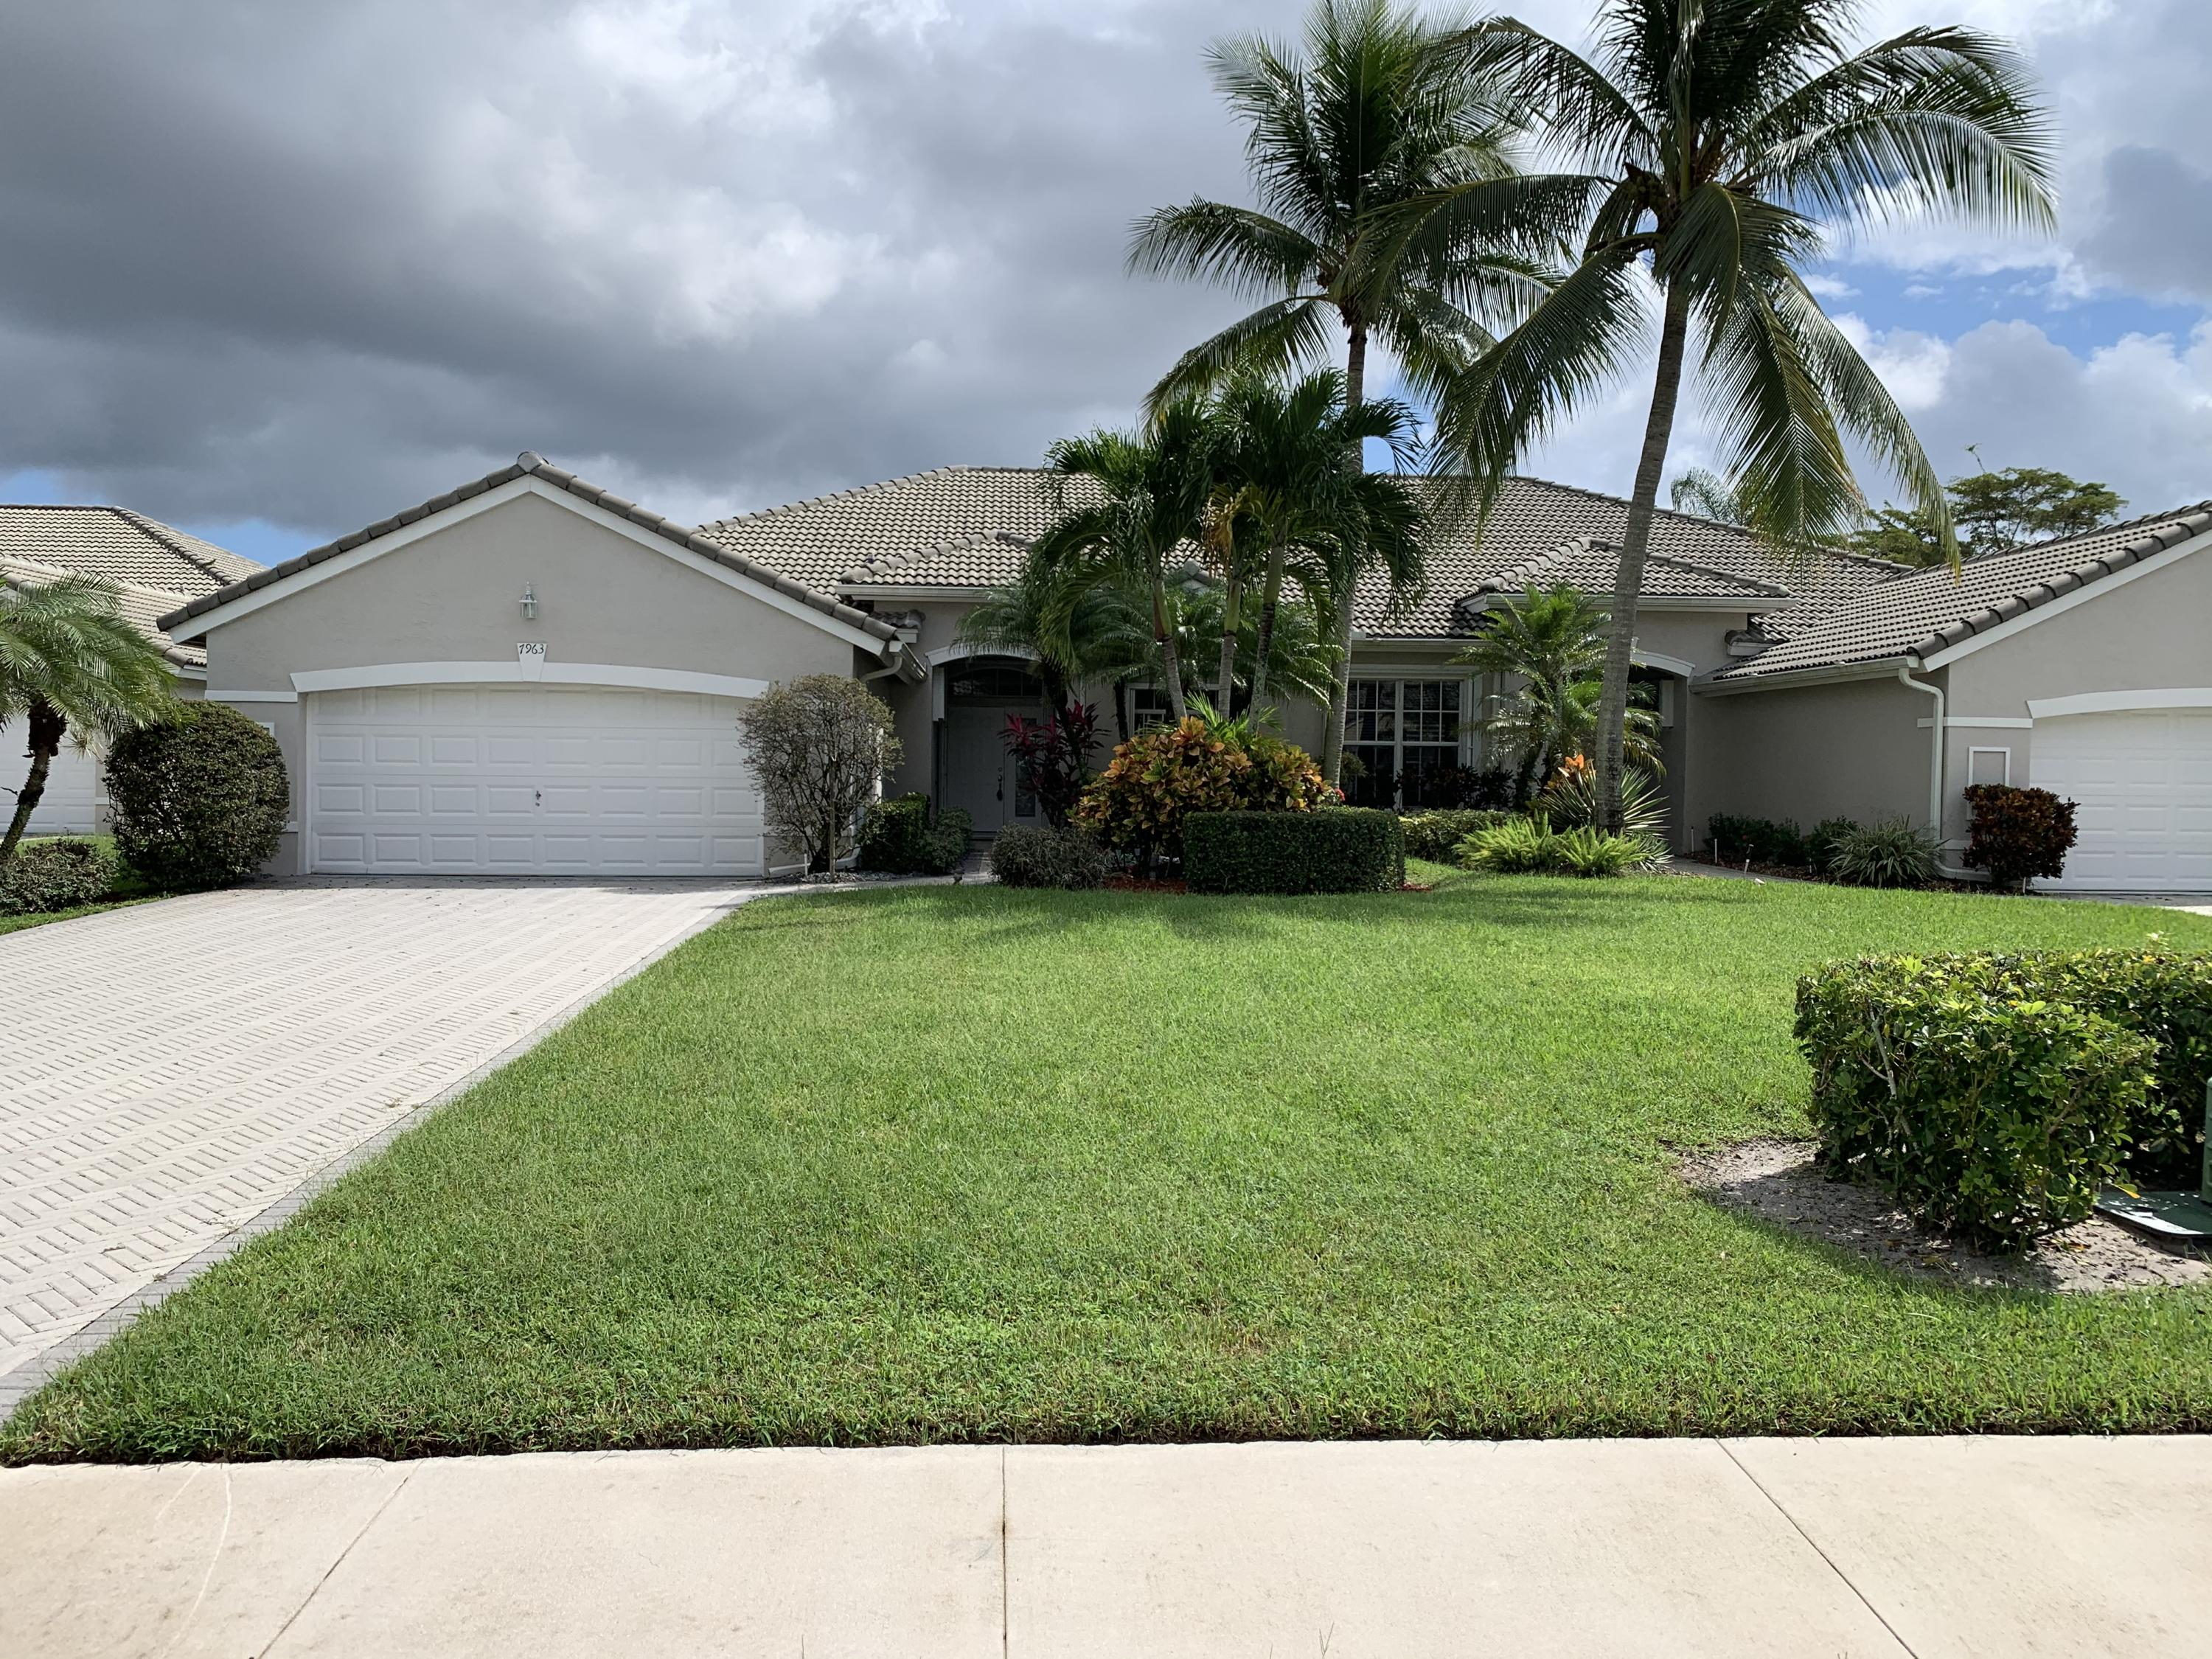 Home for sale in Aberdeen - Brittany Lakes Boynton Beach Florida